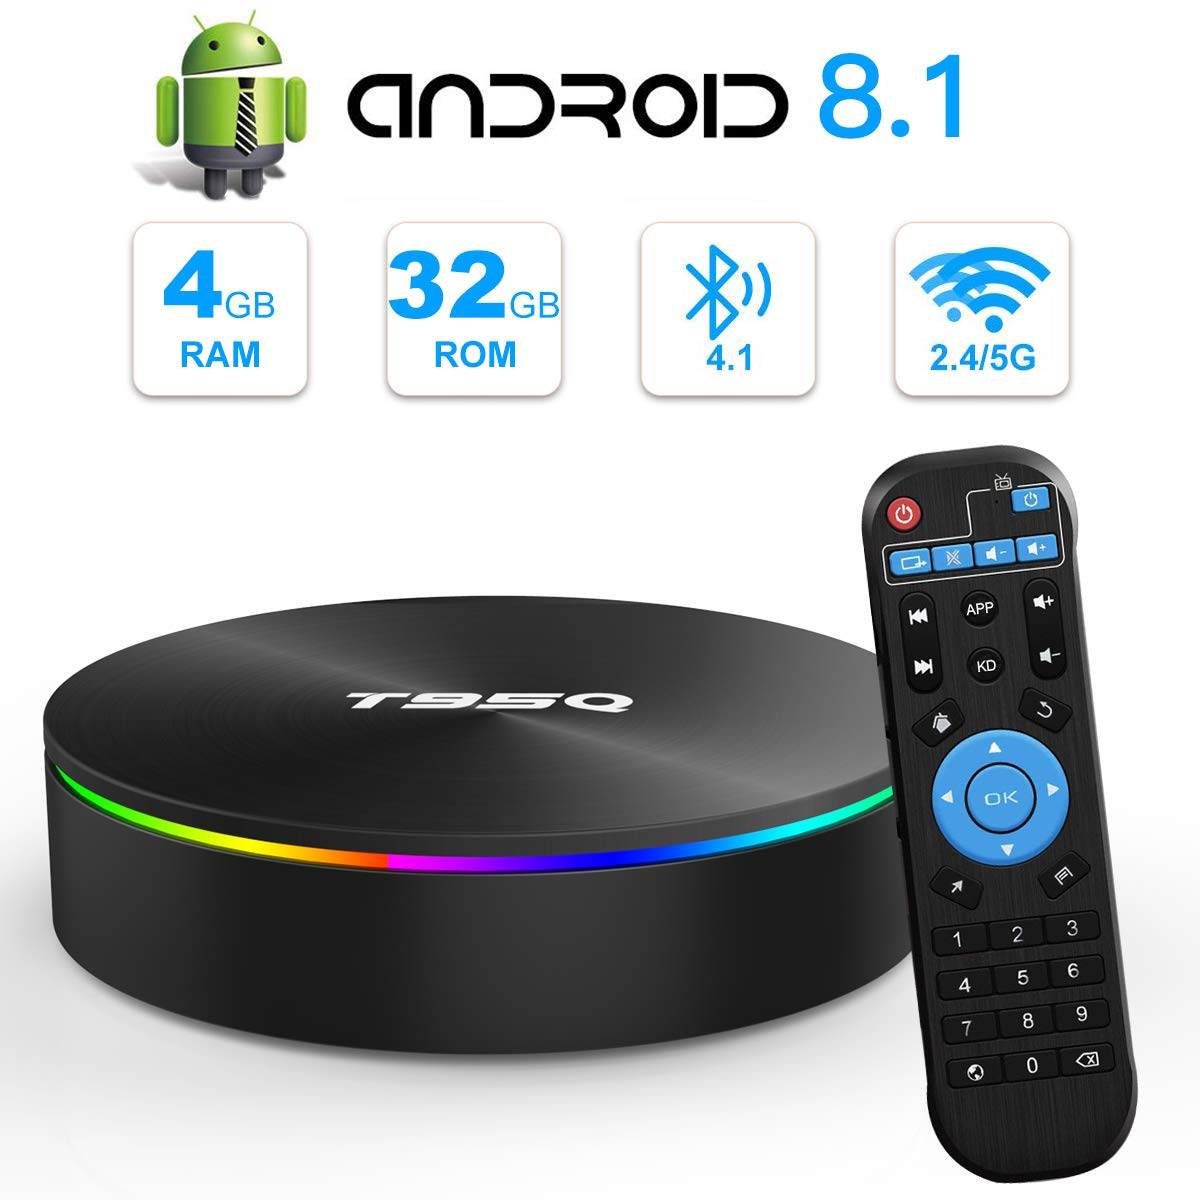 Android 8.1 TV Box, T95Q TV Box 4GB RAM 32GB ROM Amlogic S905X2 Quad-Core Cortex-A53 Bluetooth 4.1 Resolución 4K H.265 2.4GHz y 5GHz Dual Band WiFi HDMI 2.1 Smart Box: Amazon.es: Electrónica